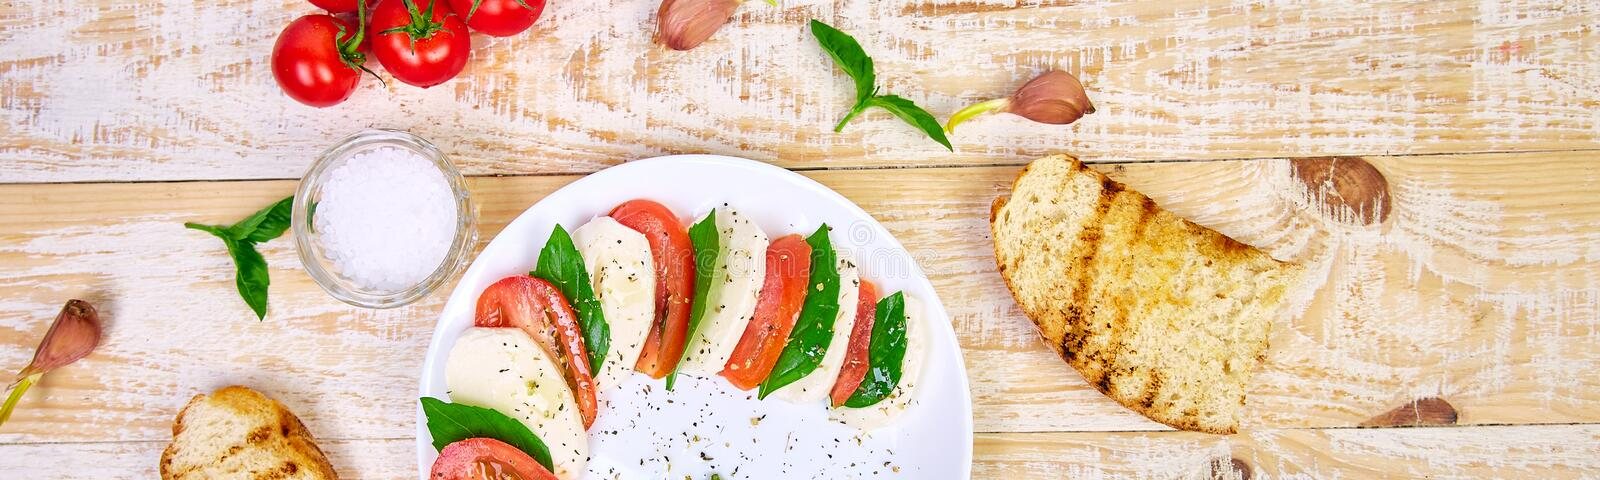 Banner with Italian caprese salad with sliced tomatoes, mozzarella cheese, basil, olive oil. On wooden background. Top view with space for your text stock images